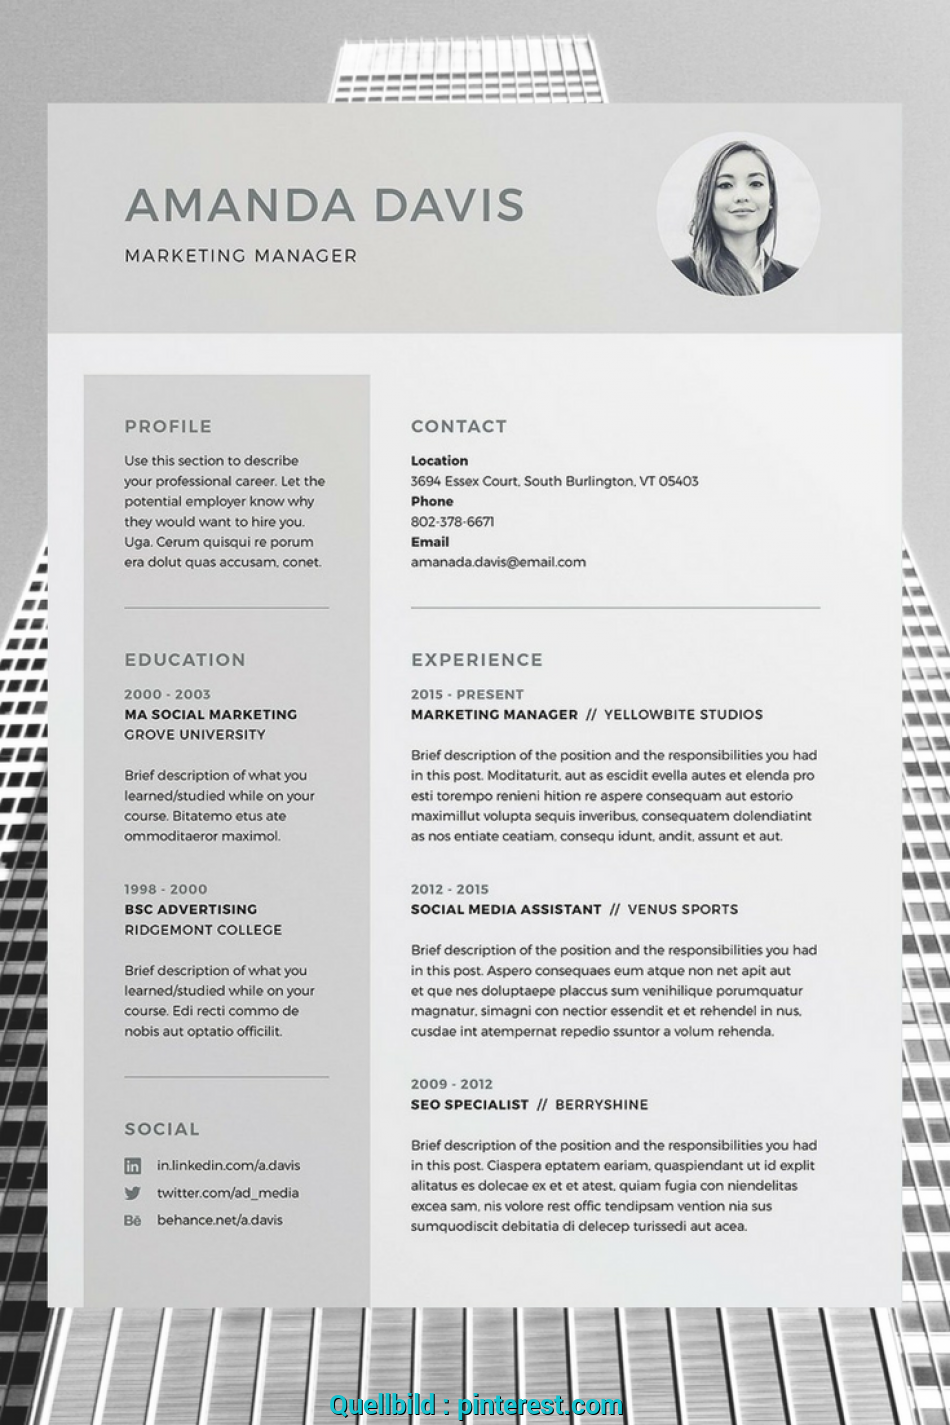 Kostbar Amanda 3 Page Resume CV Template Word Photoshop InDesign Professional Design Cover Letter Instant Download